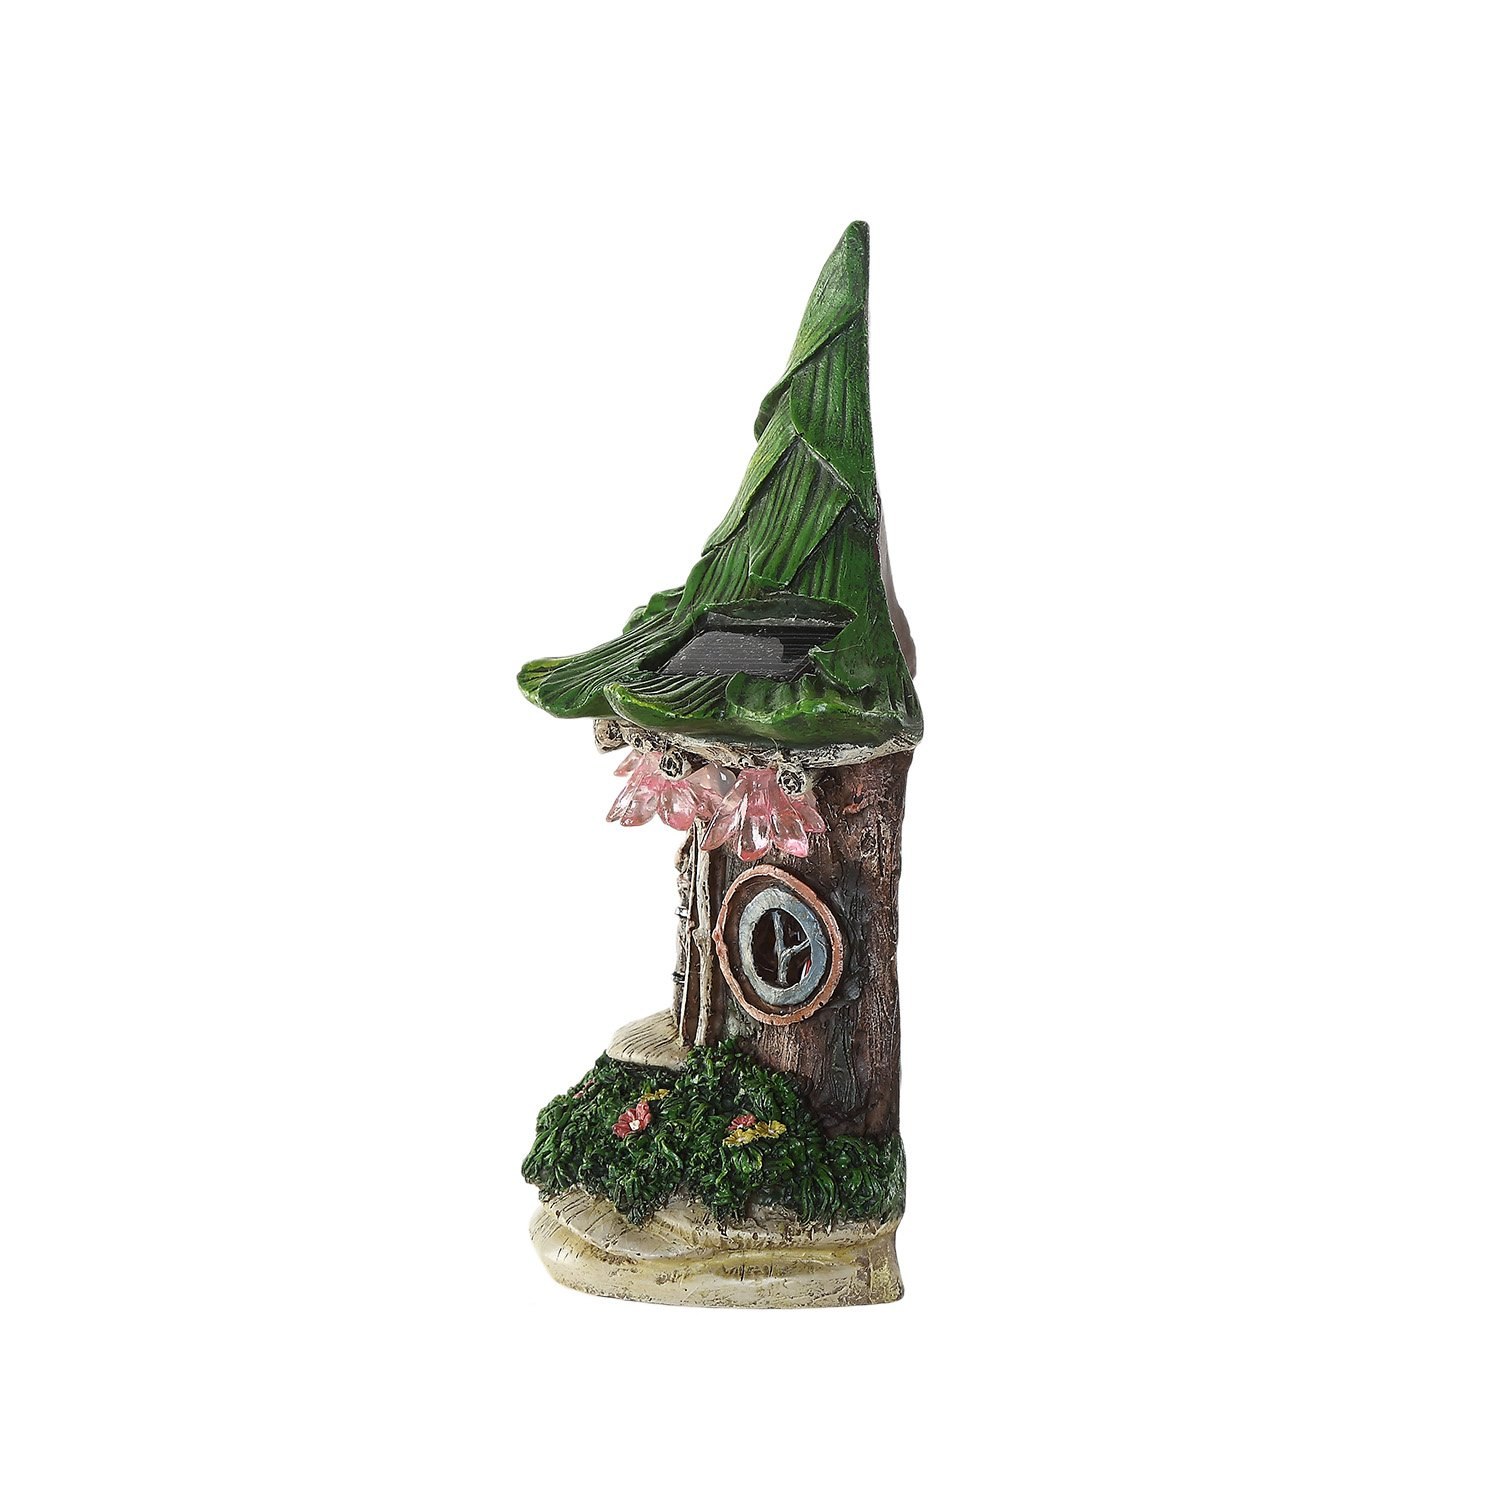 Ivy Home Solar Powered Garden Fairy Statues Tree Hanging Resin Fairy House by Ivy Home (Image #5)